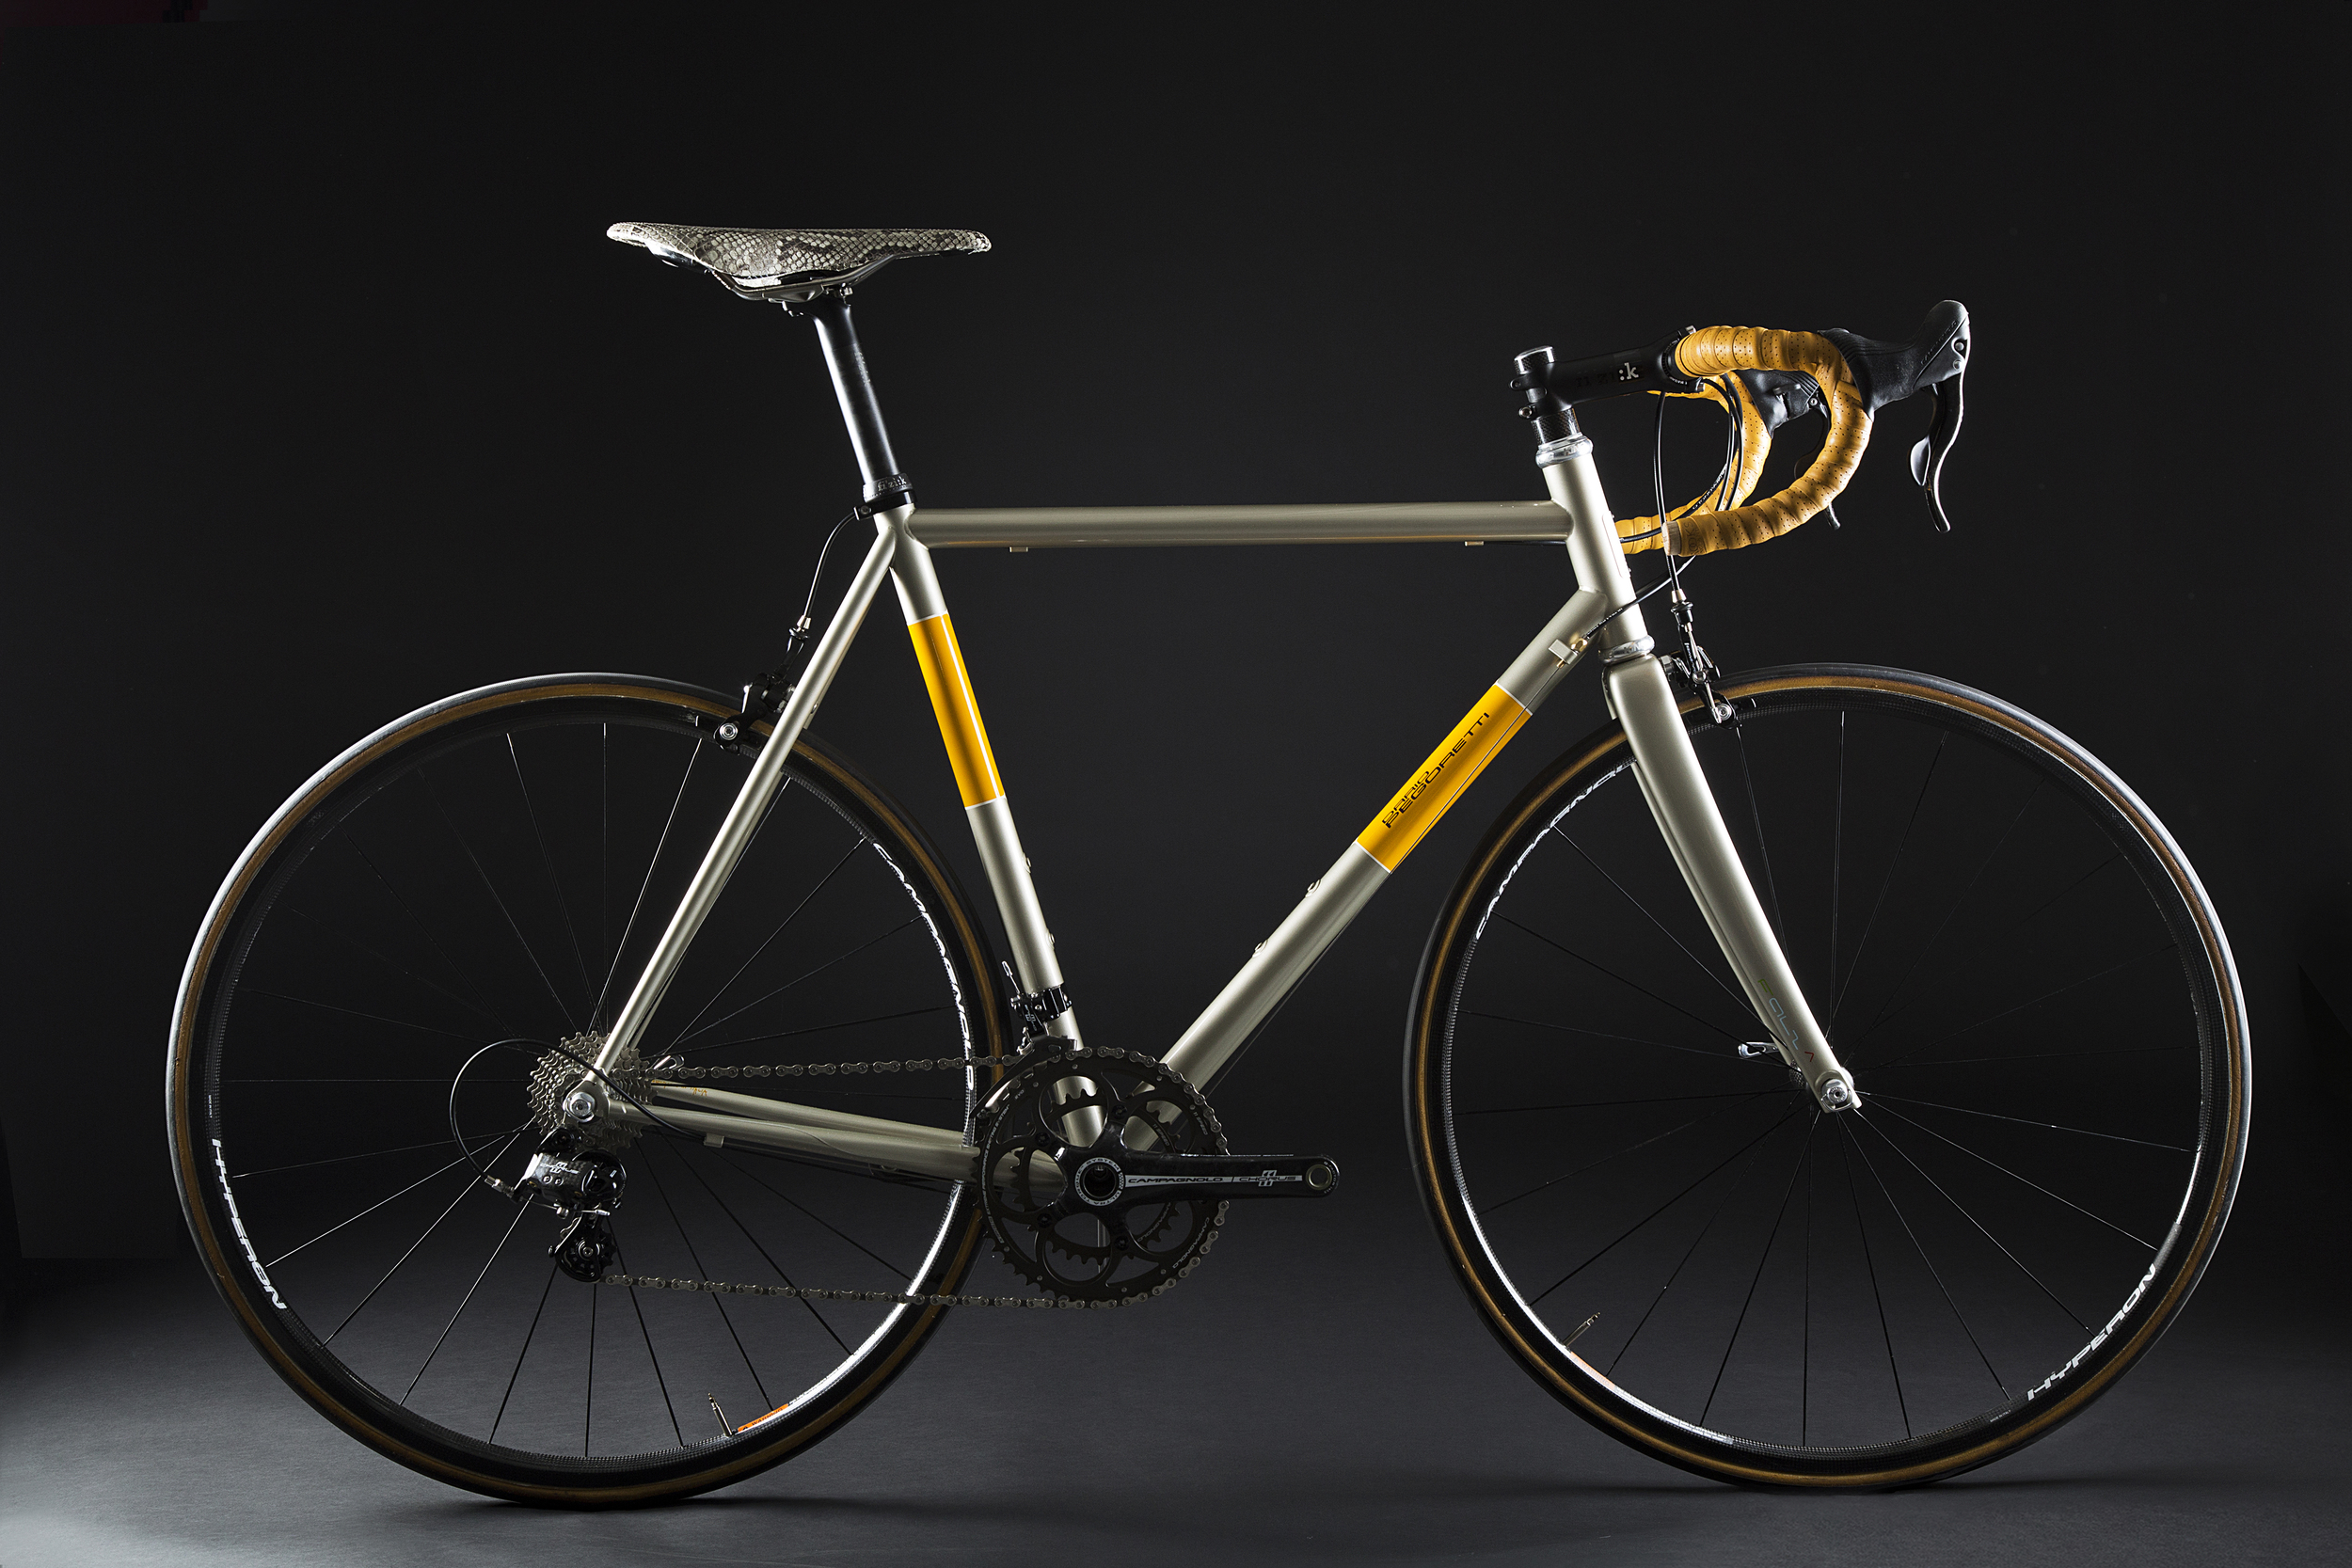 Pegoretti Duende Faema Champagne Bicycle, $3,350,  click link to purchase